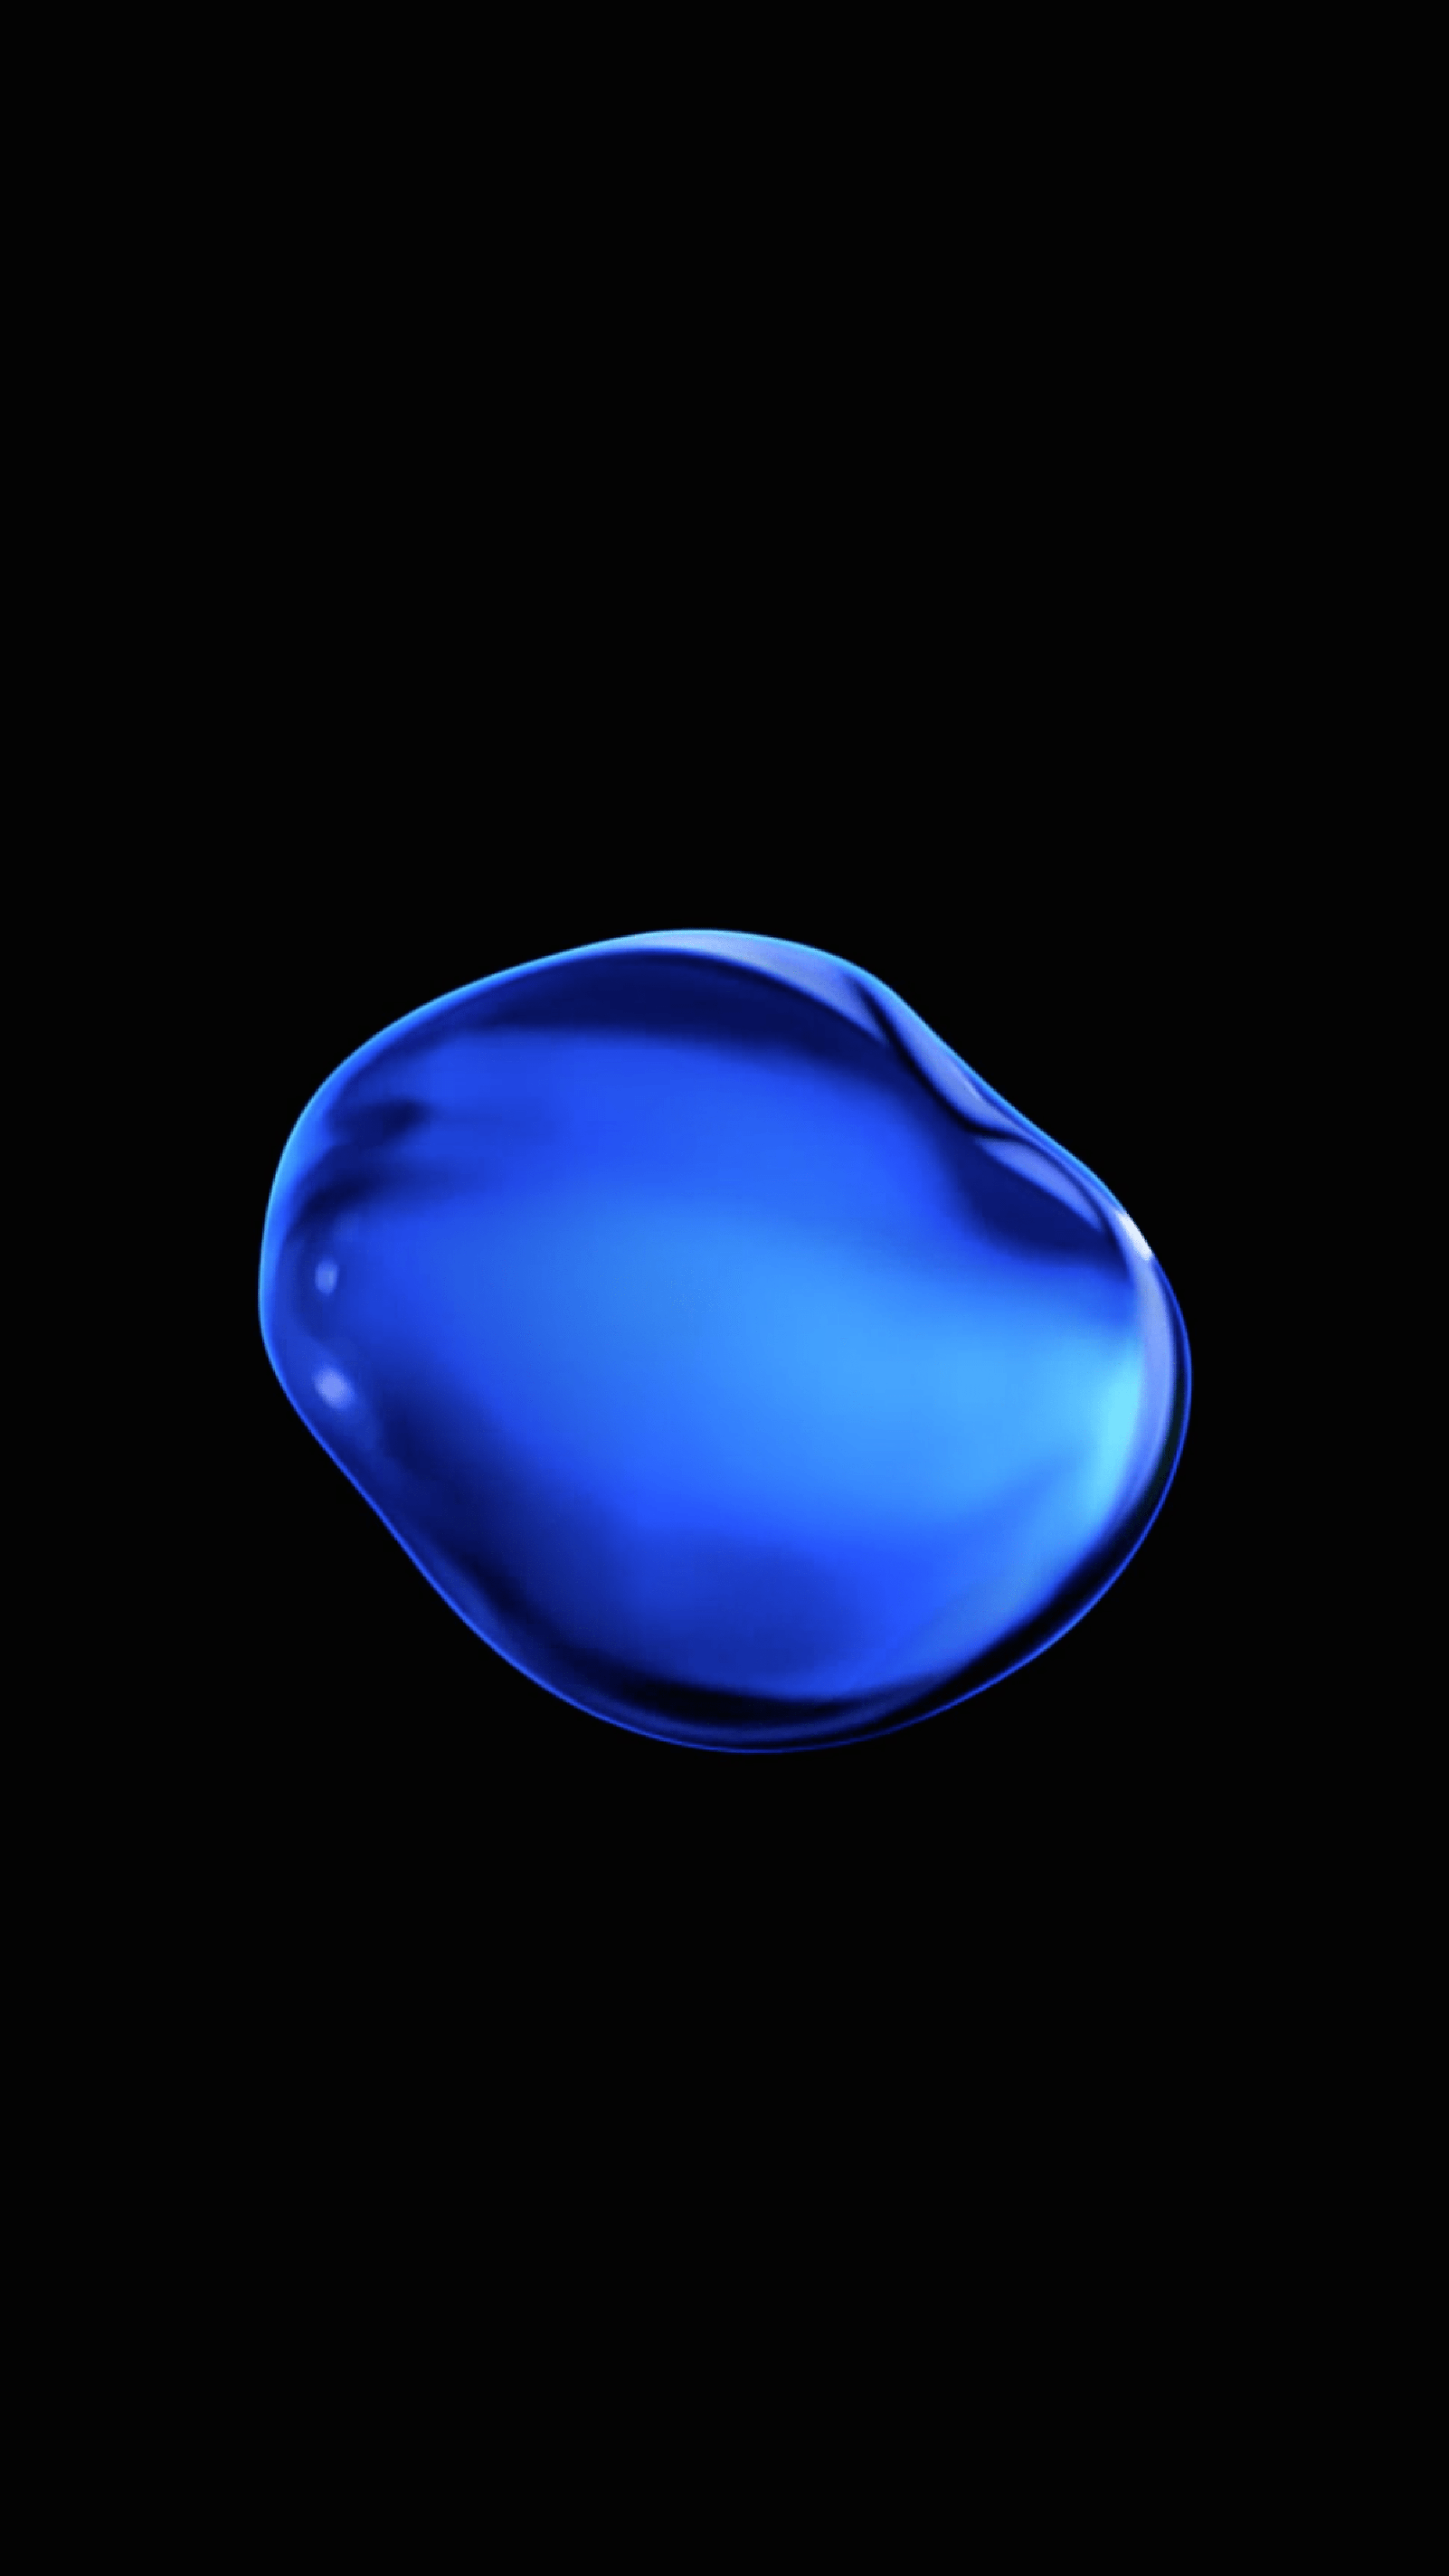 Apple Iphone 7 Wallpapers Wallpaper Cave